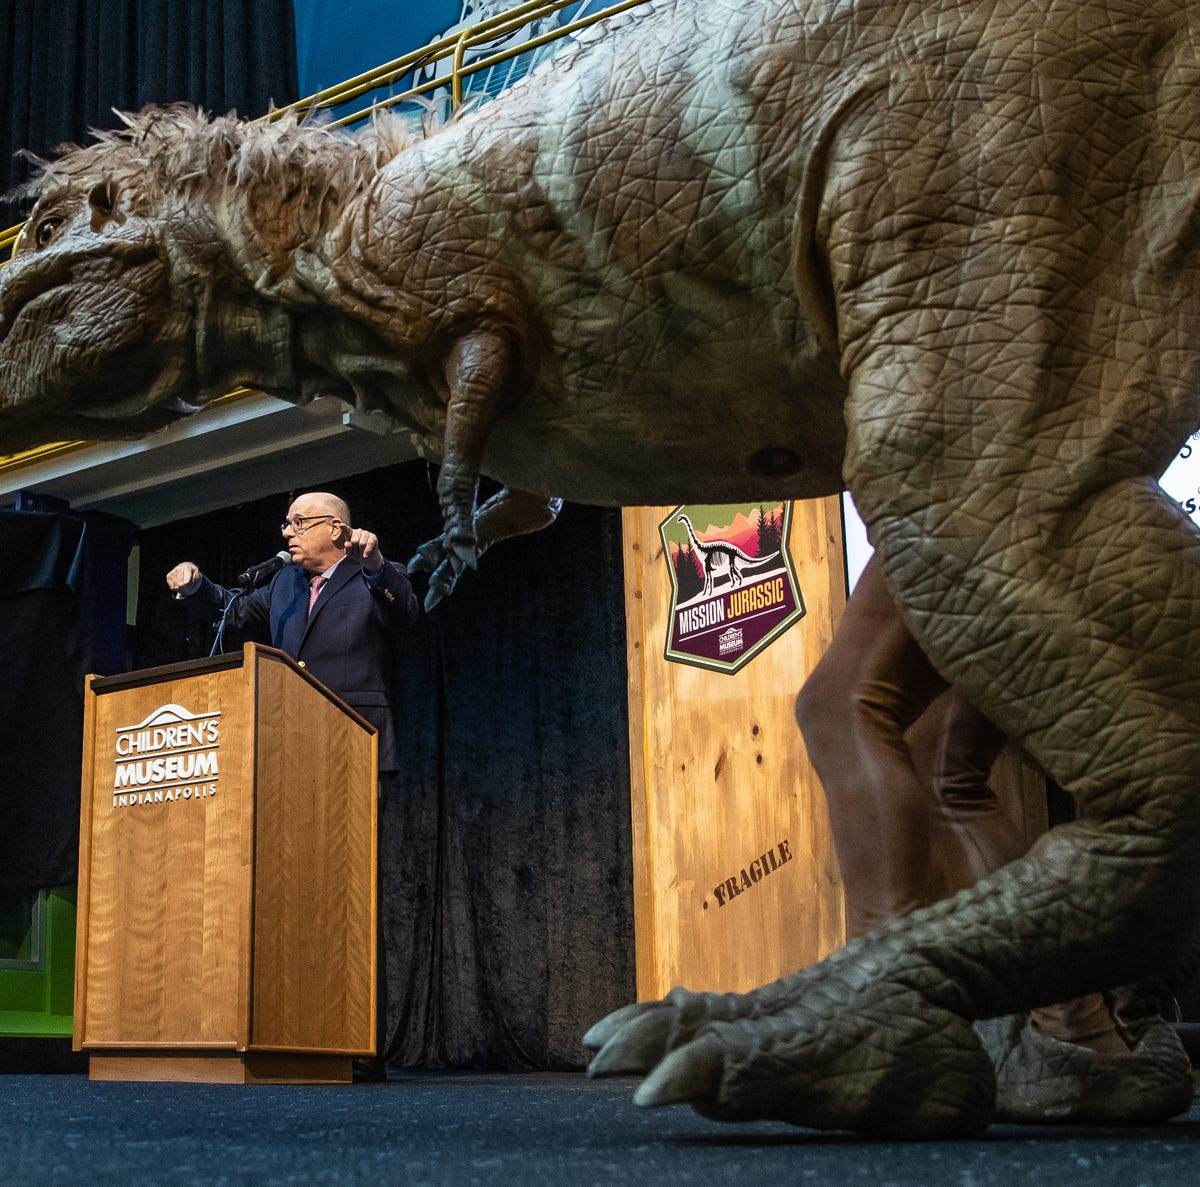 Children's Museum's Dinosphere to get big expansion as it funds major dinosaur dig